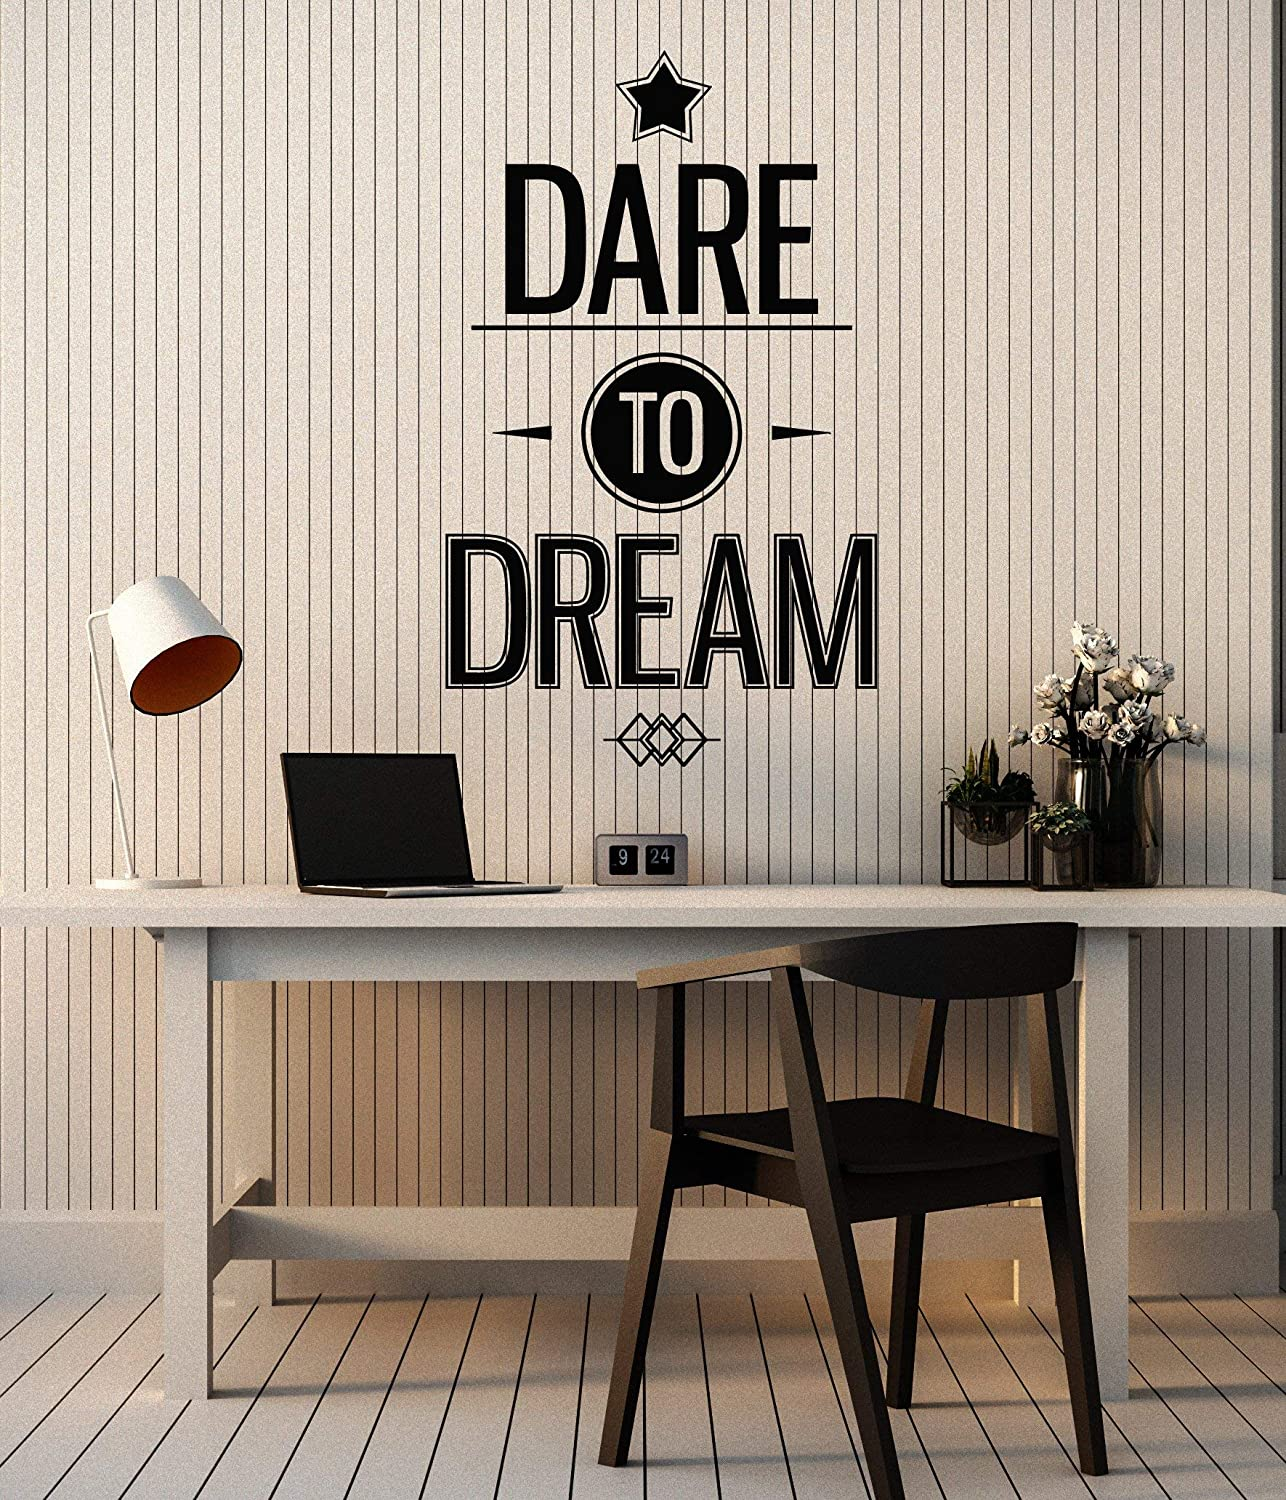 Vinyl Wall Decal Inspirational Phrase Words Dare to Dream Stickers Mural Large Decor (g5201) Black